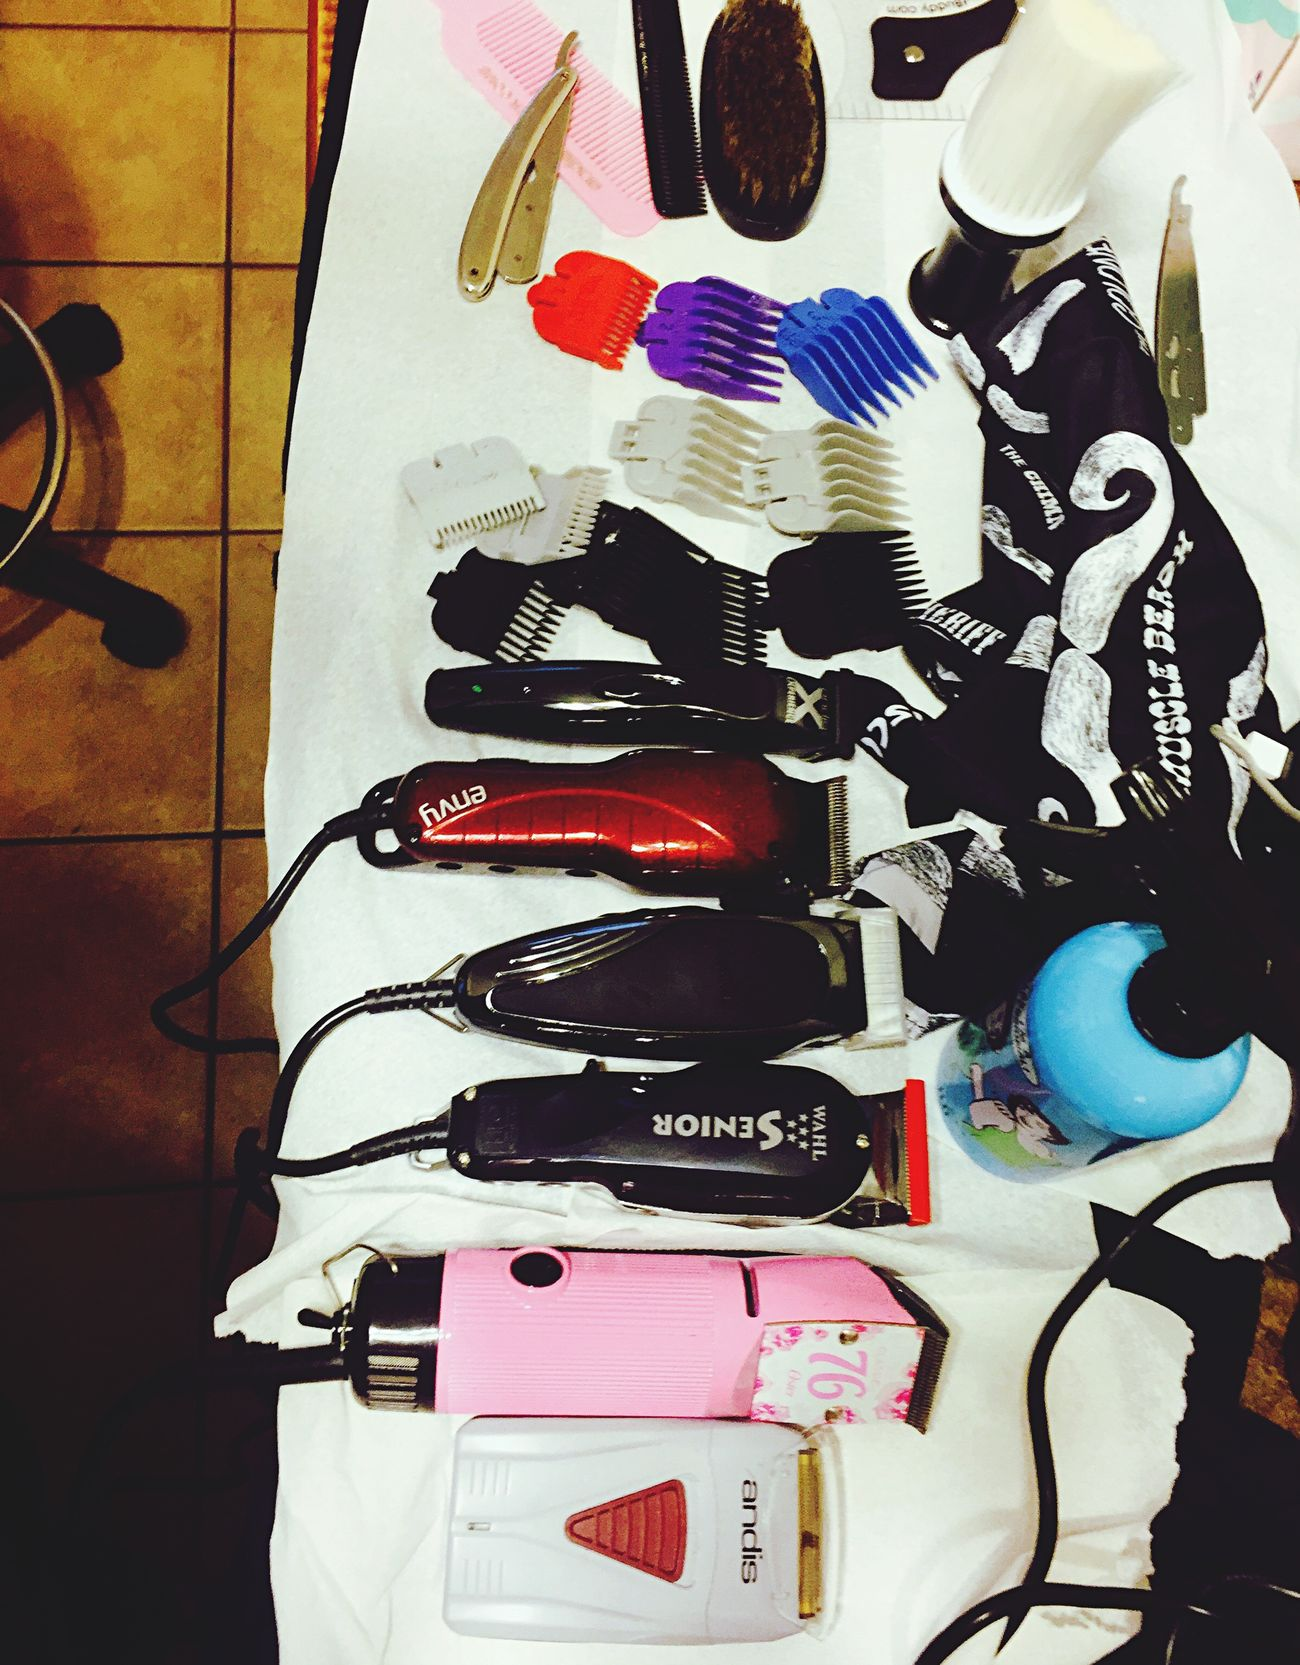 Clippers Hairstylist Table Equipment Razor Talc Barber Andis  Wahlclippers